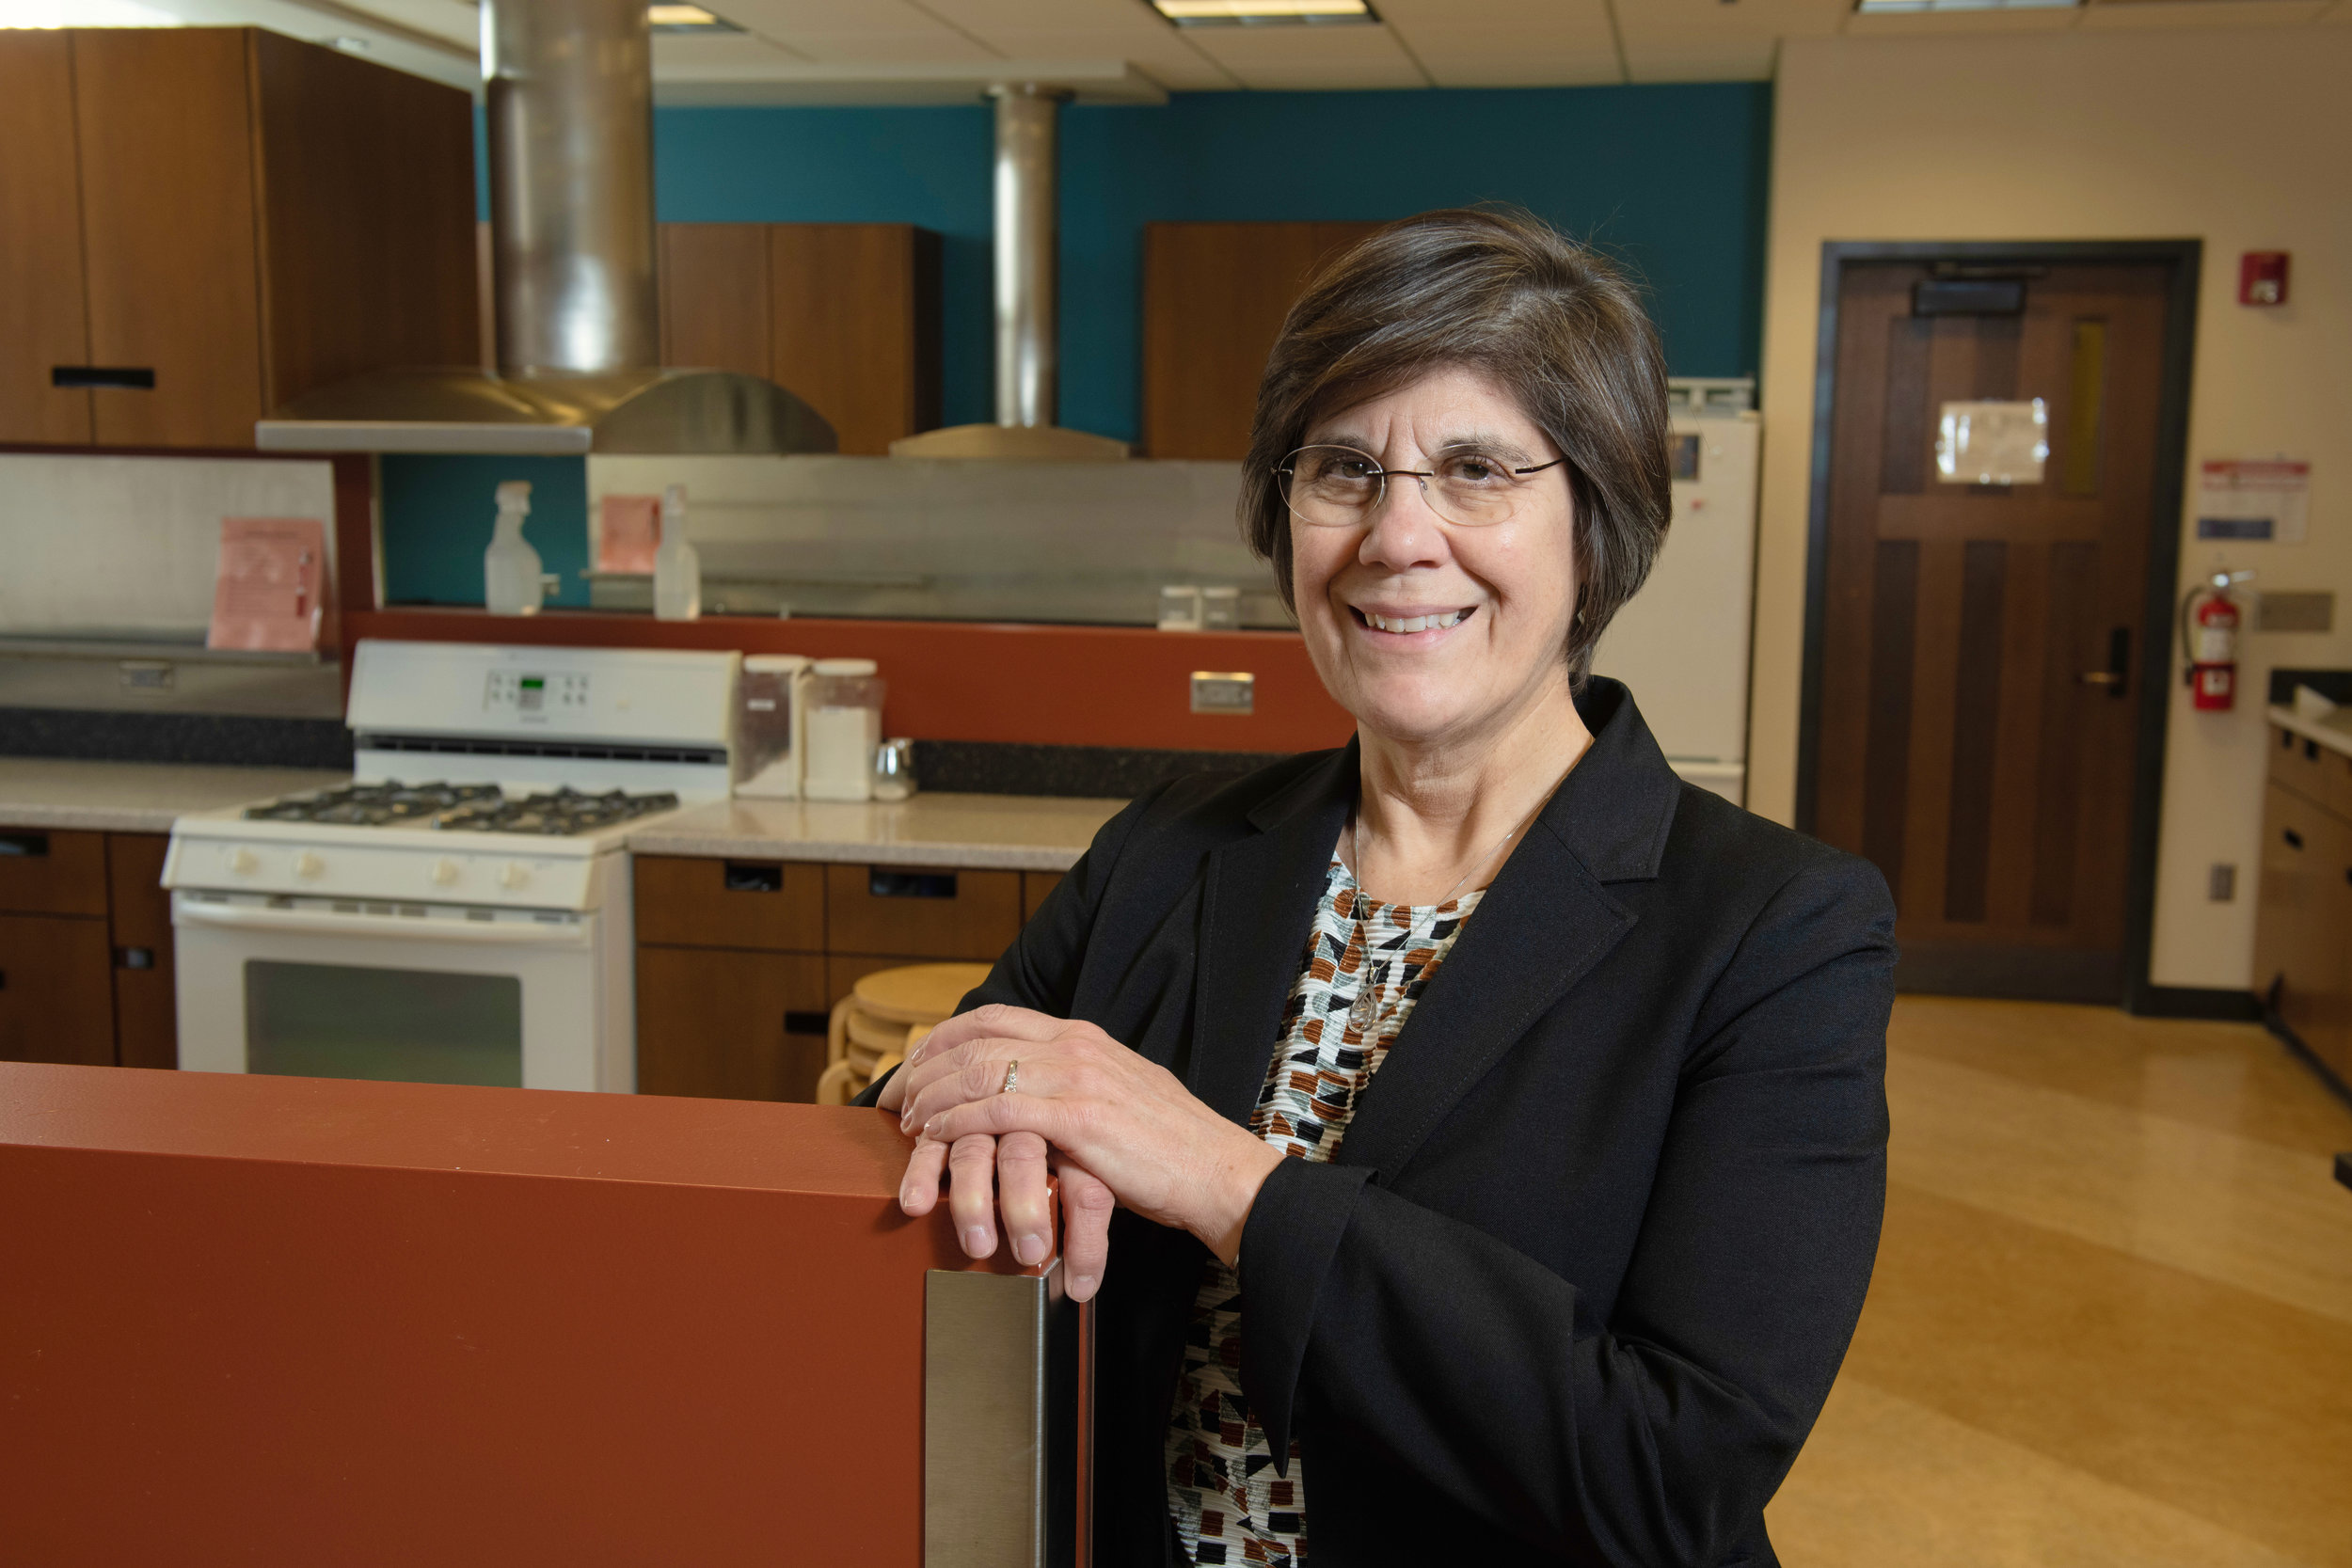 Dr. Ruth MacDonald works with students across the nutrition, dietetic, food science, culinary food science and nursing programs at Iowa State University. Photo credit: Joseph L. Murphy